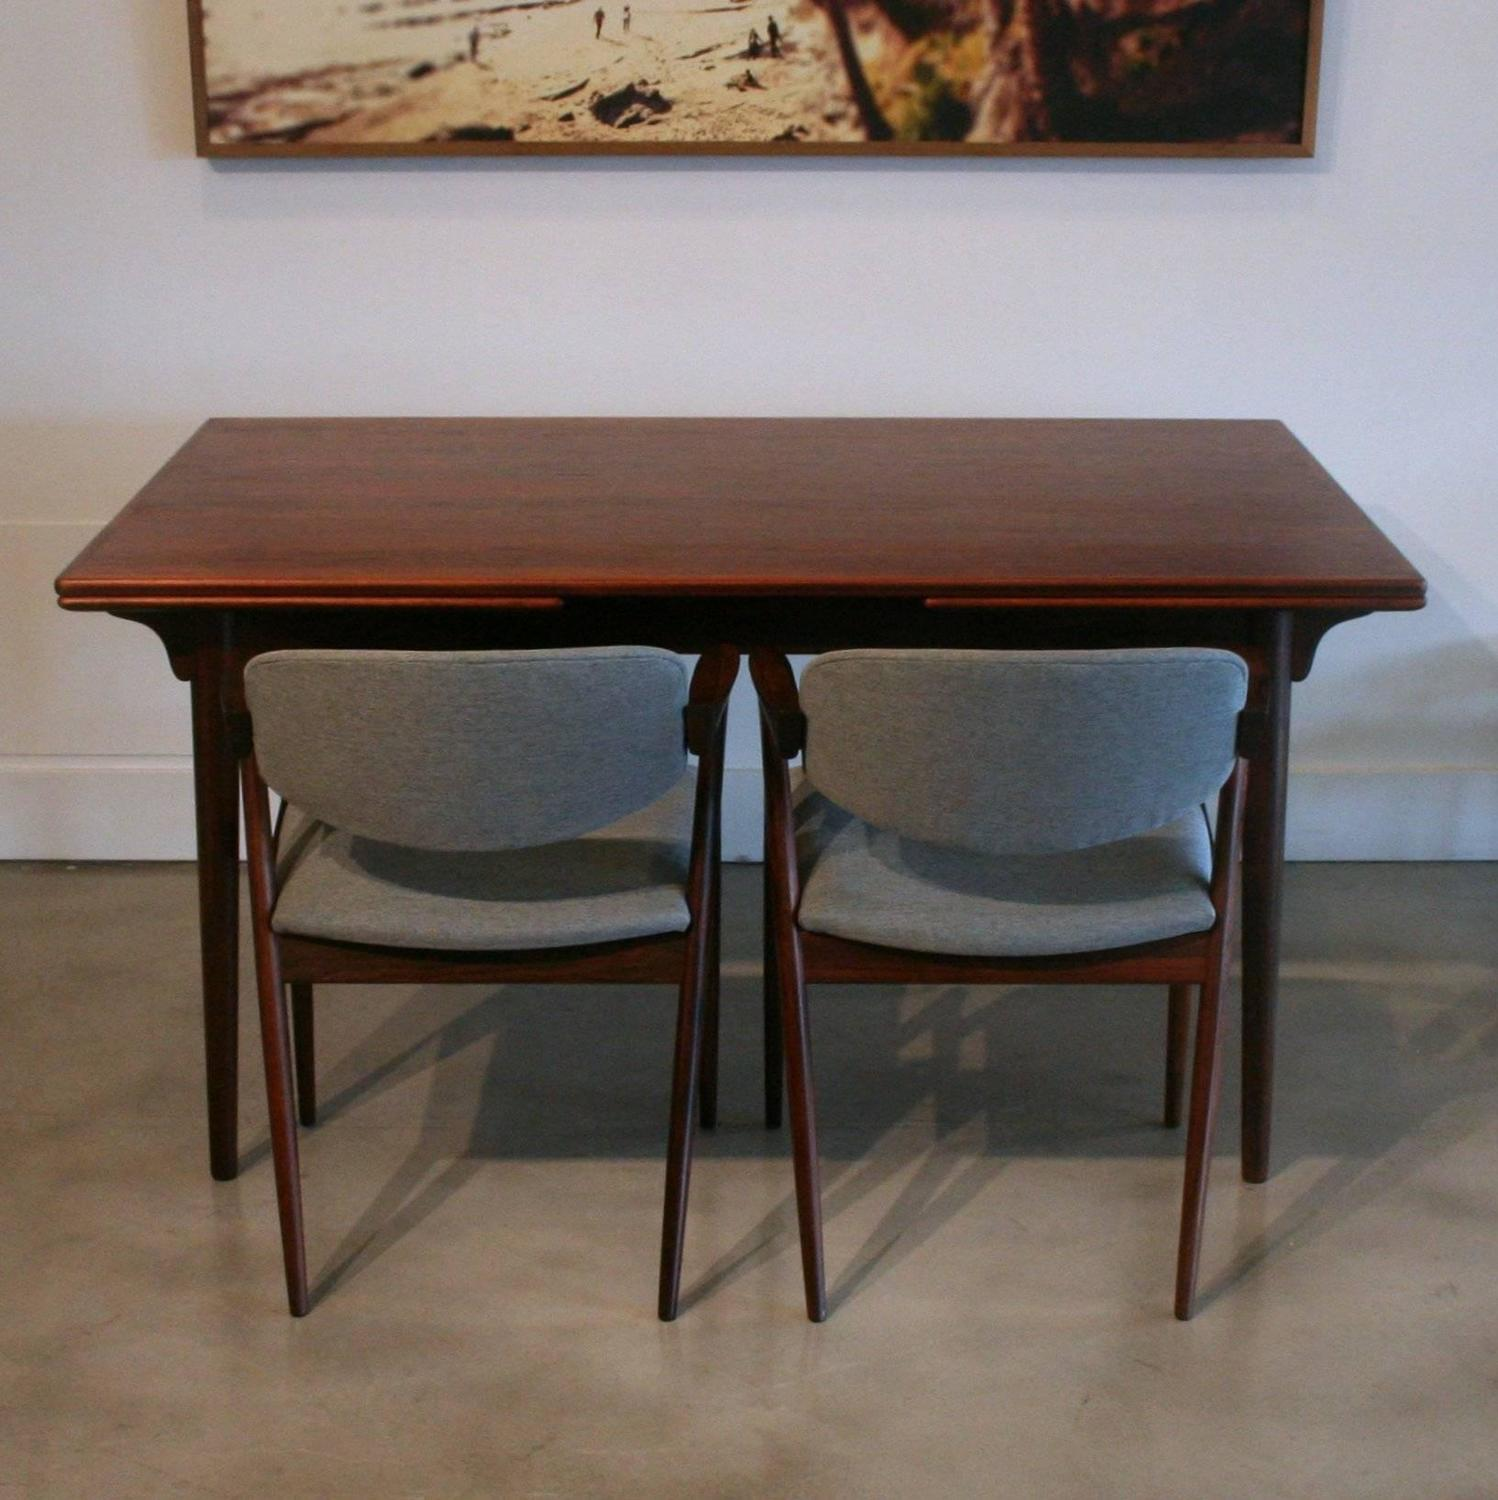 Vintage danish rosewood dining table at 1stdibs for Dining room tables vancouver bc